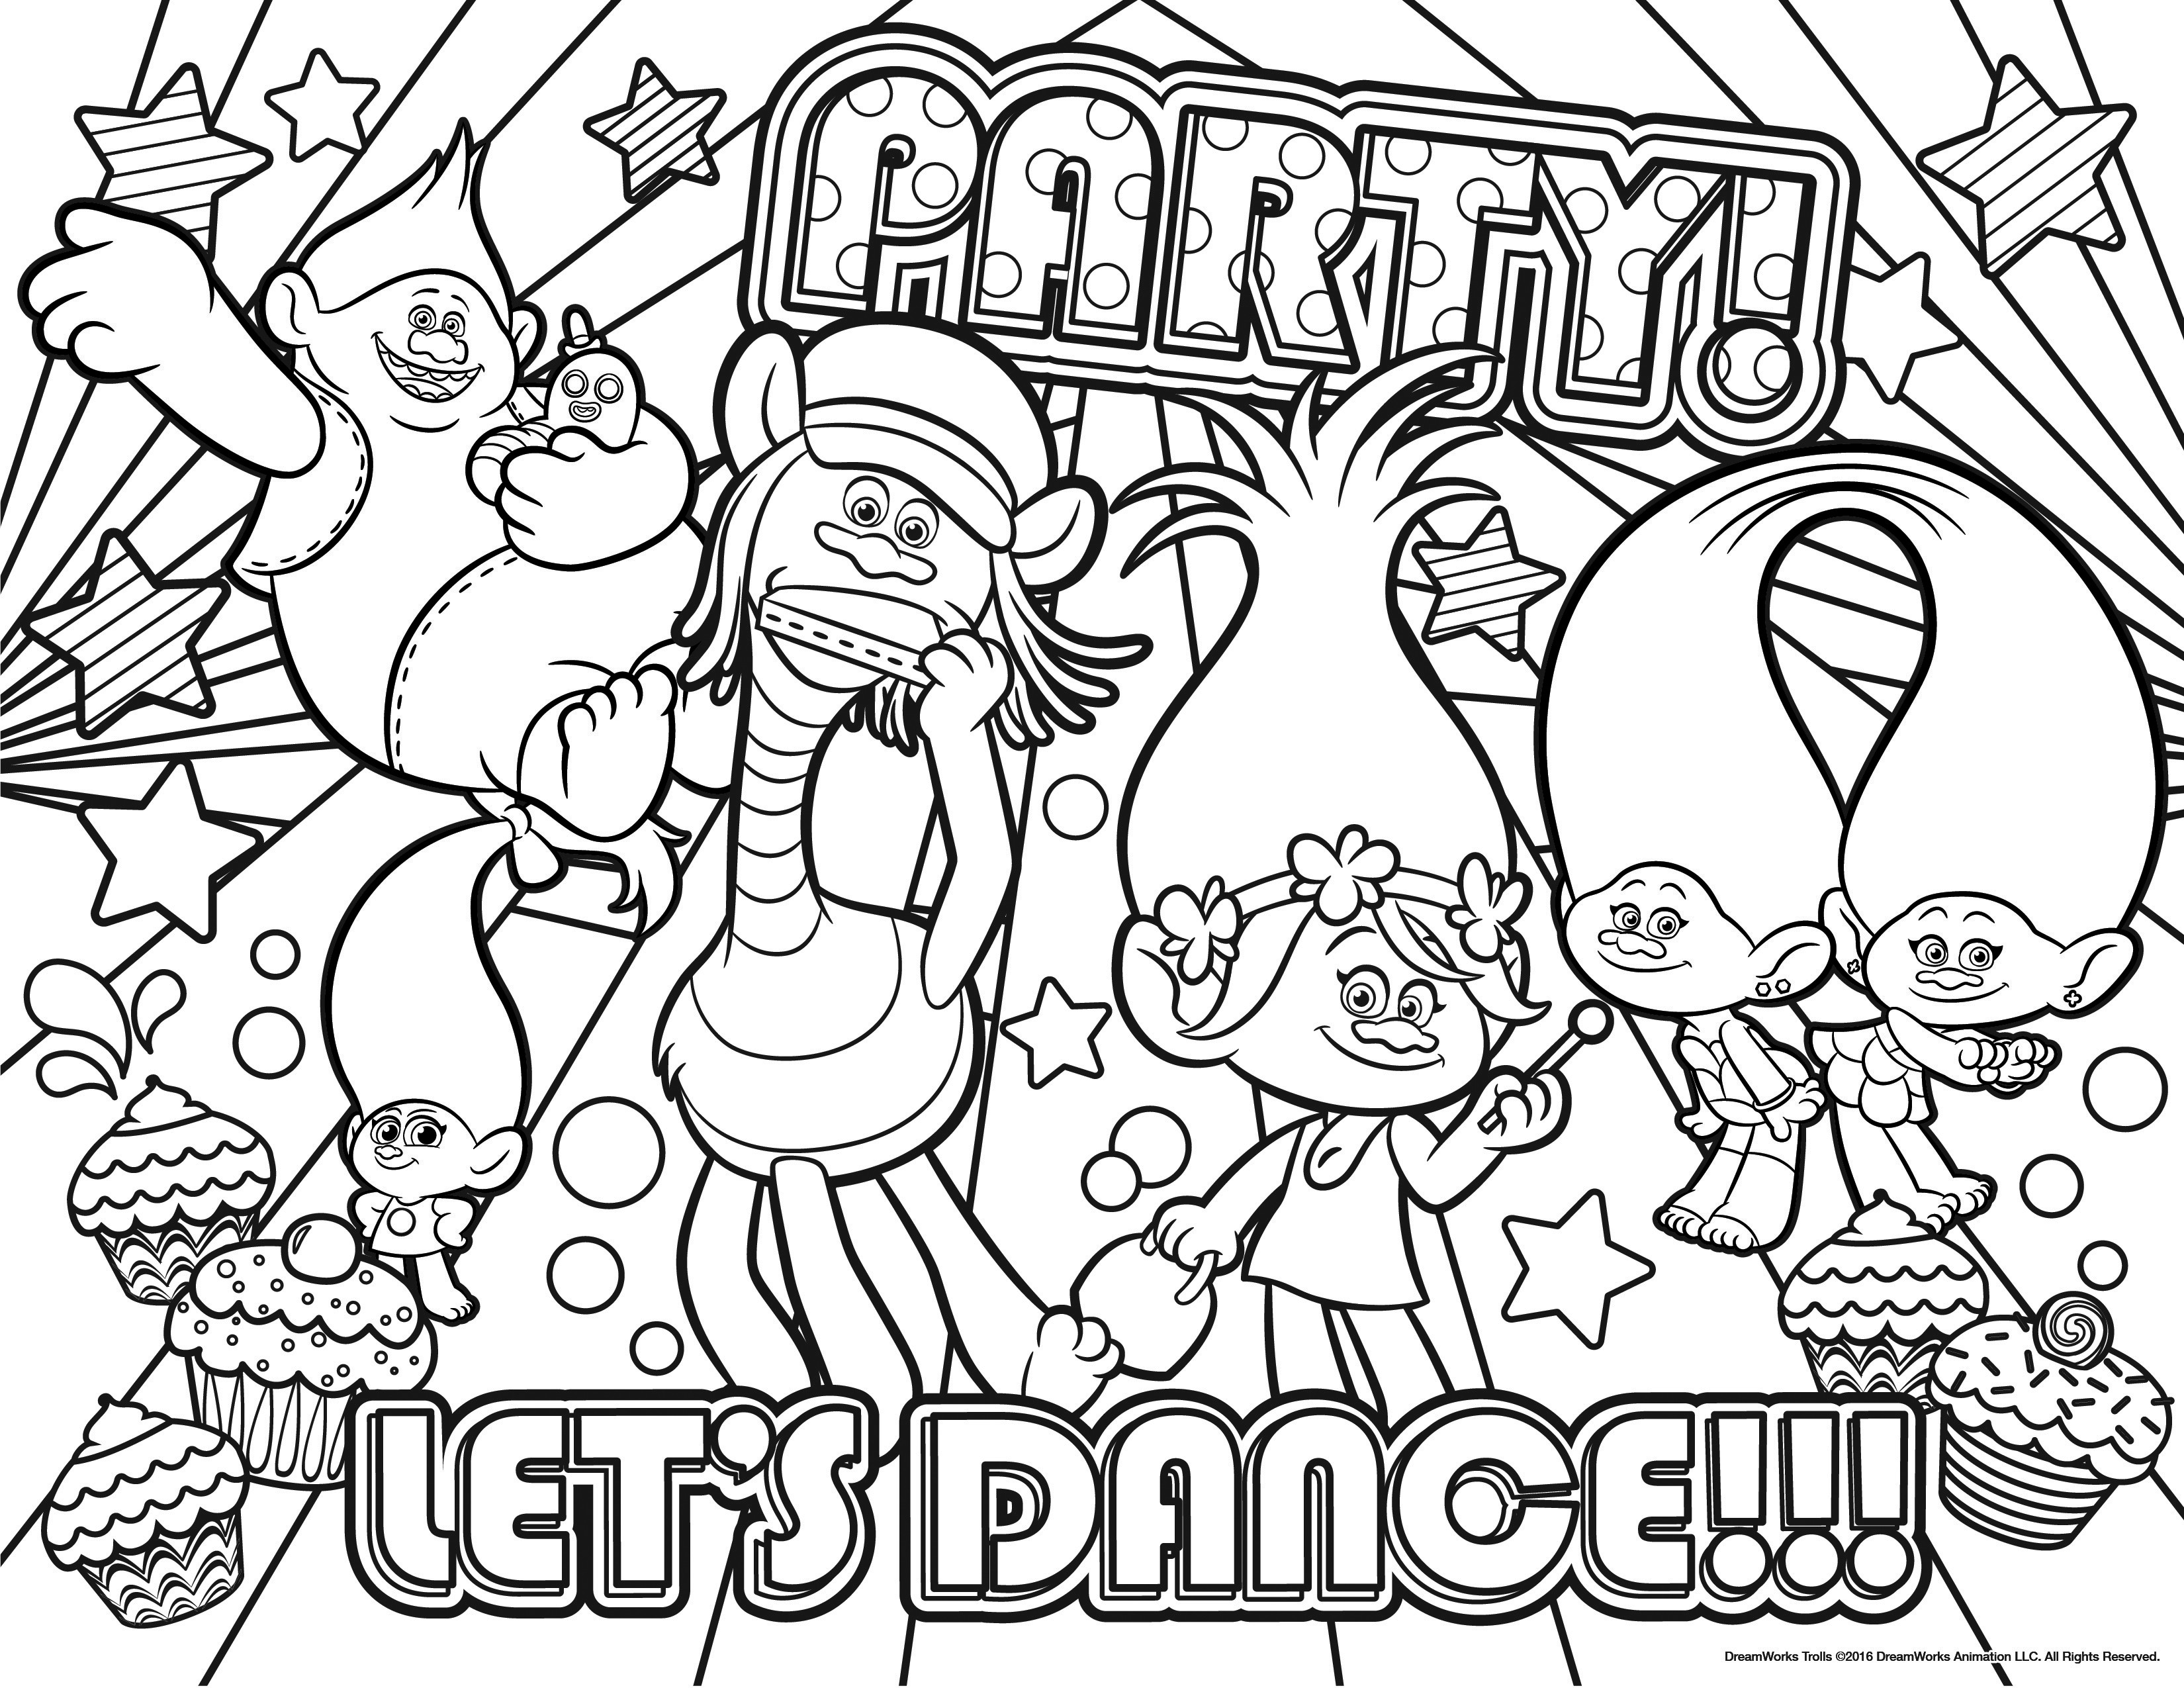 coloring pictures printable free printable trolls coloring pages free printable printable pictures coloring